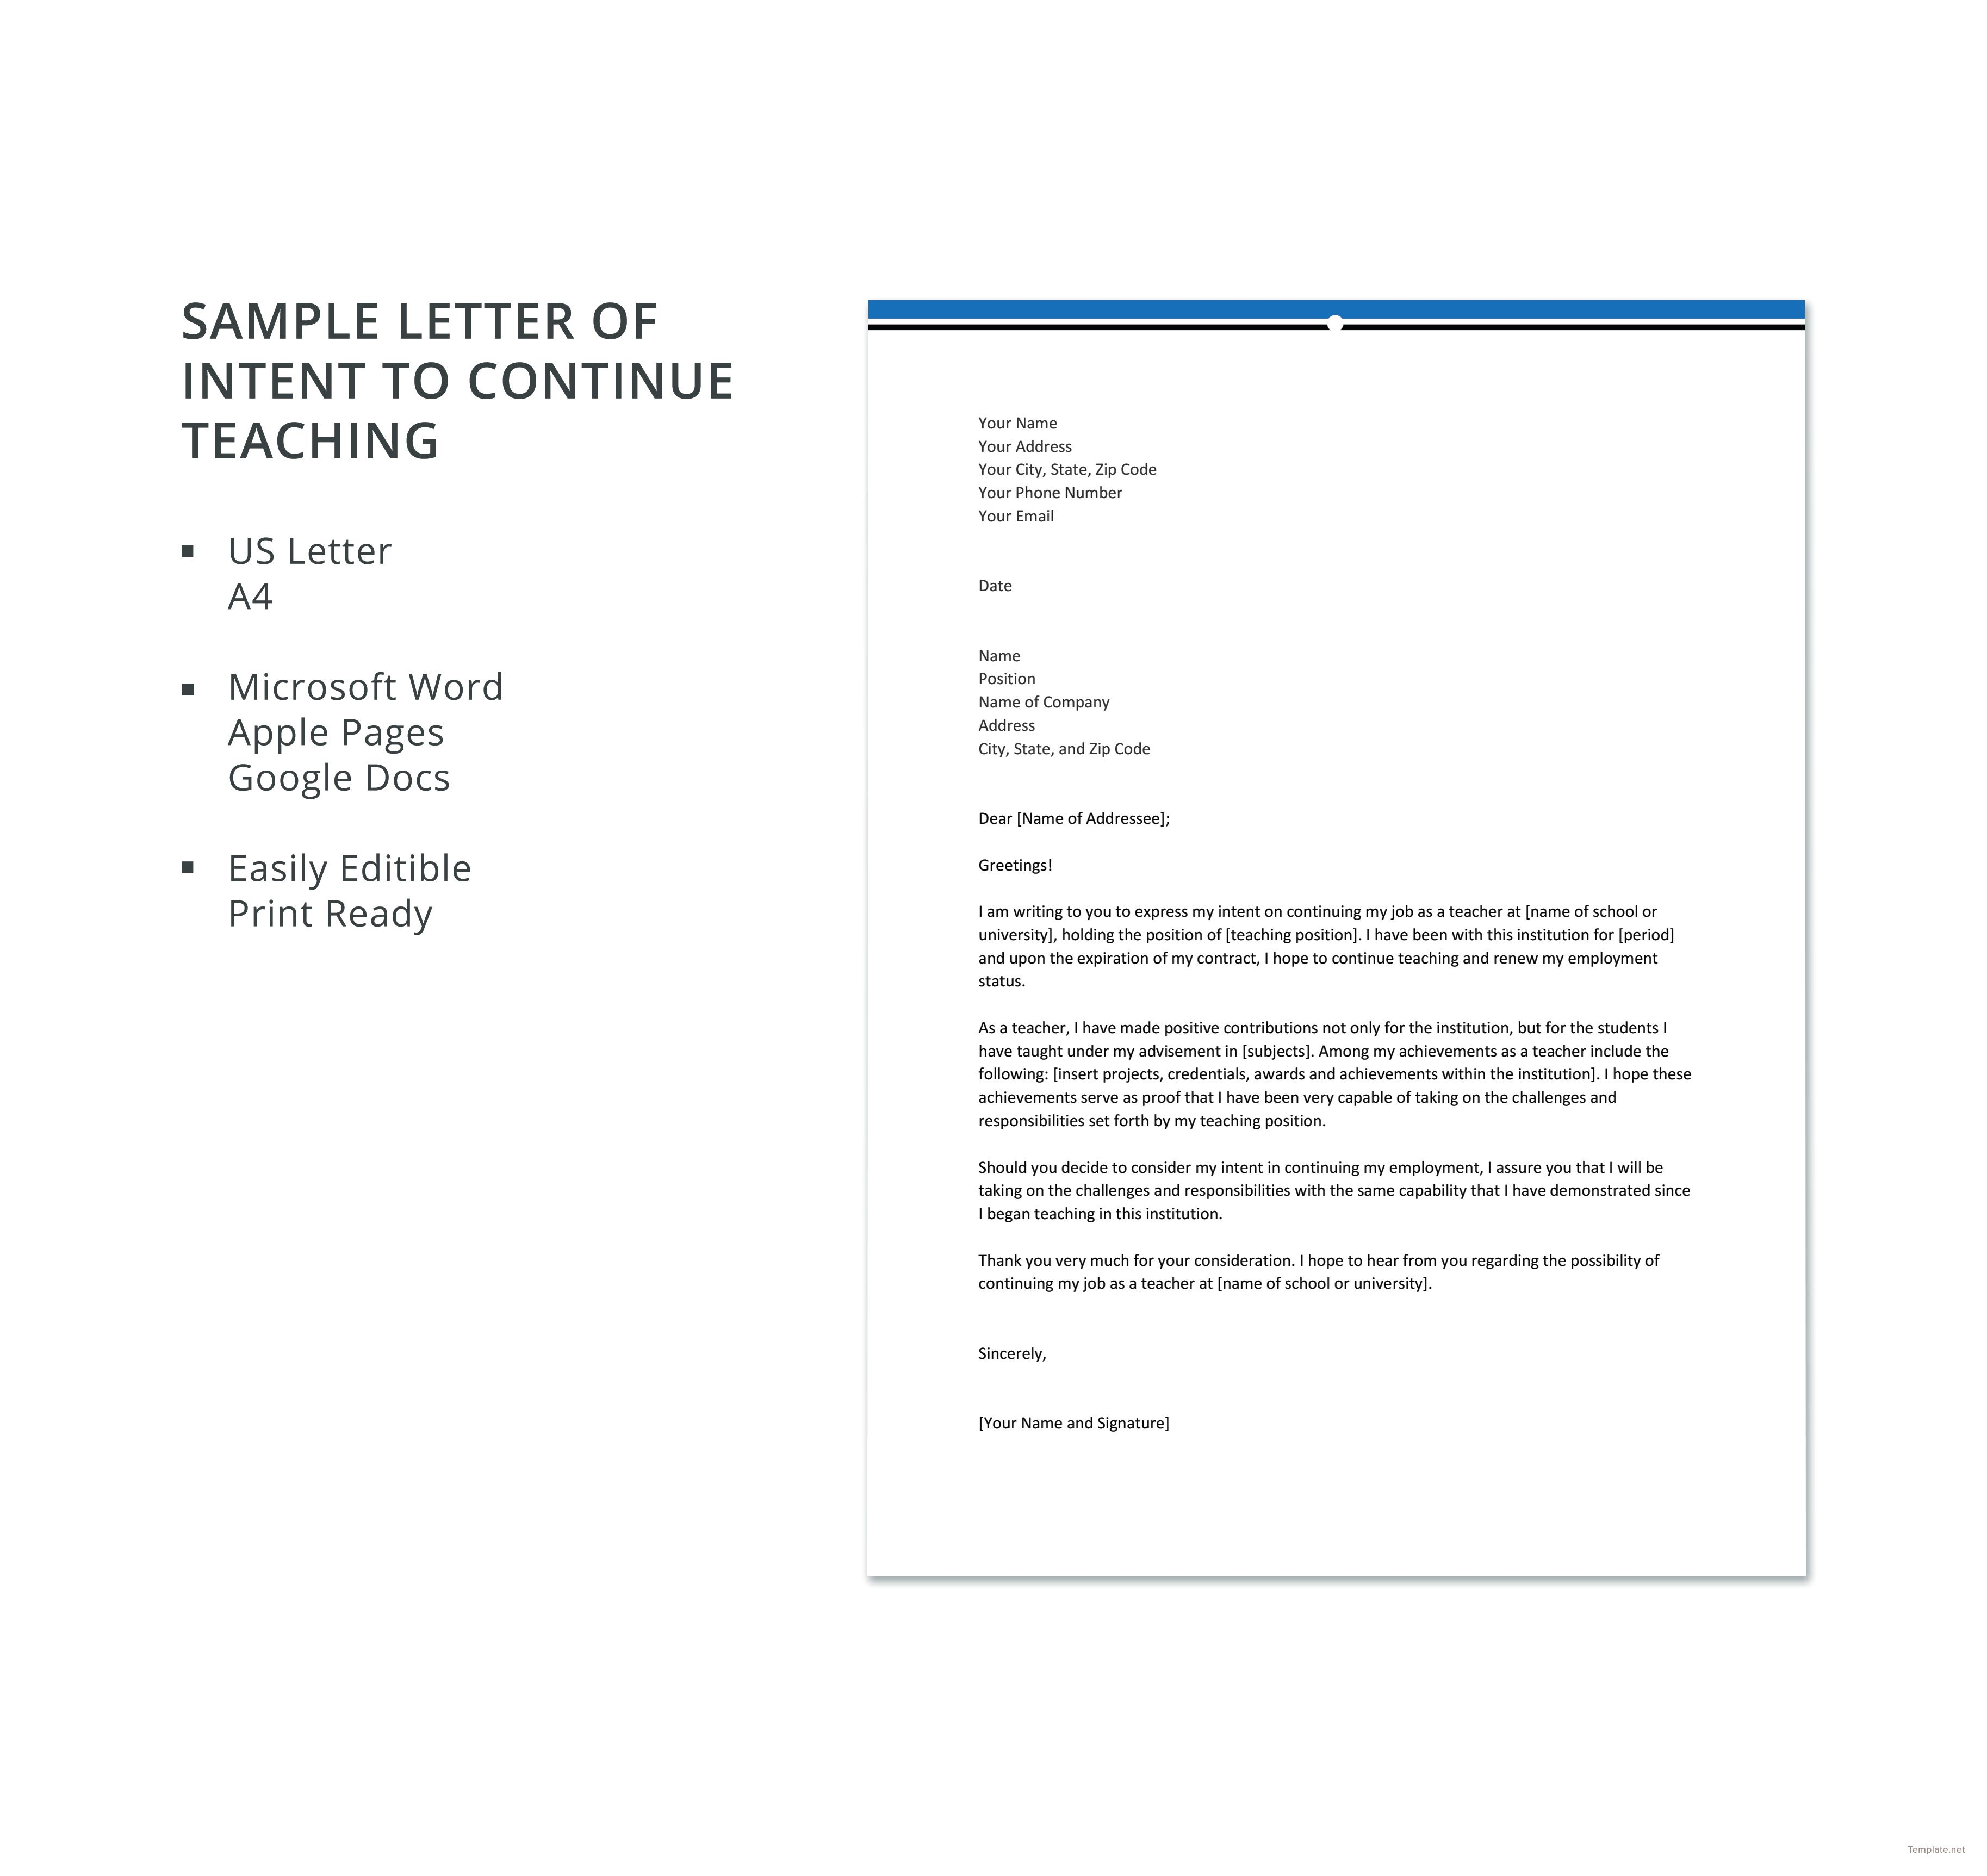 Currency Strategist Cover Letter Free Sample Letter Of Intent To Continue Teaching Letter